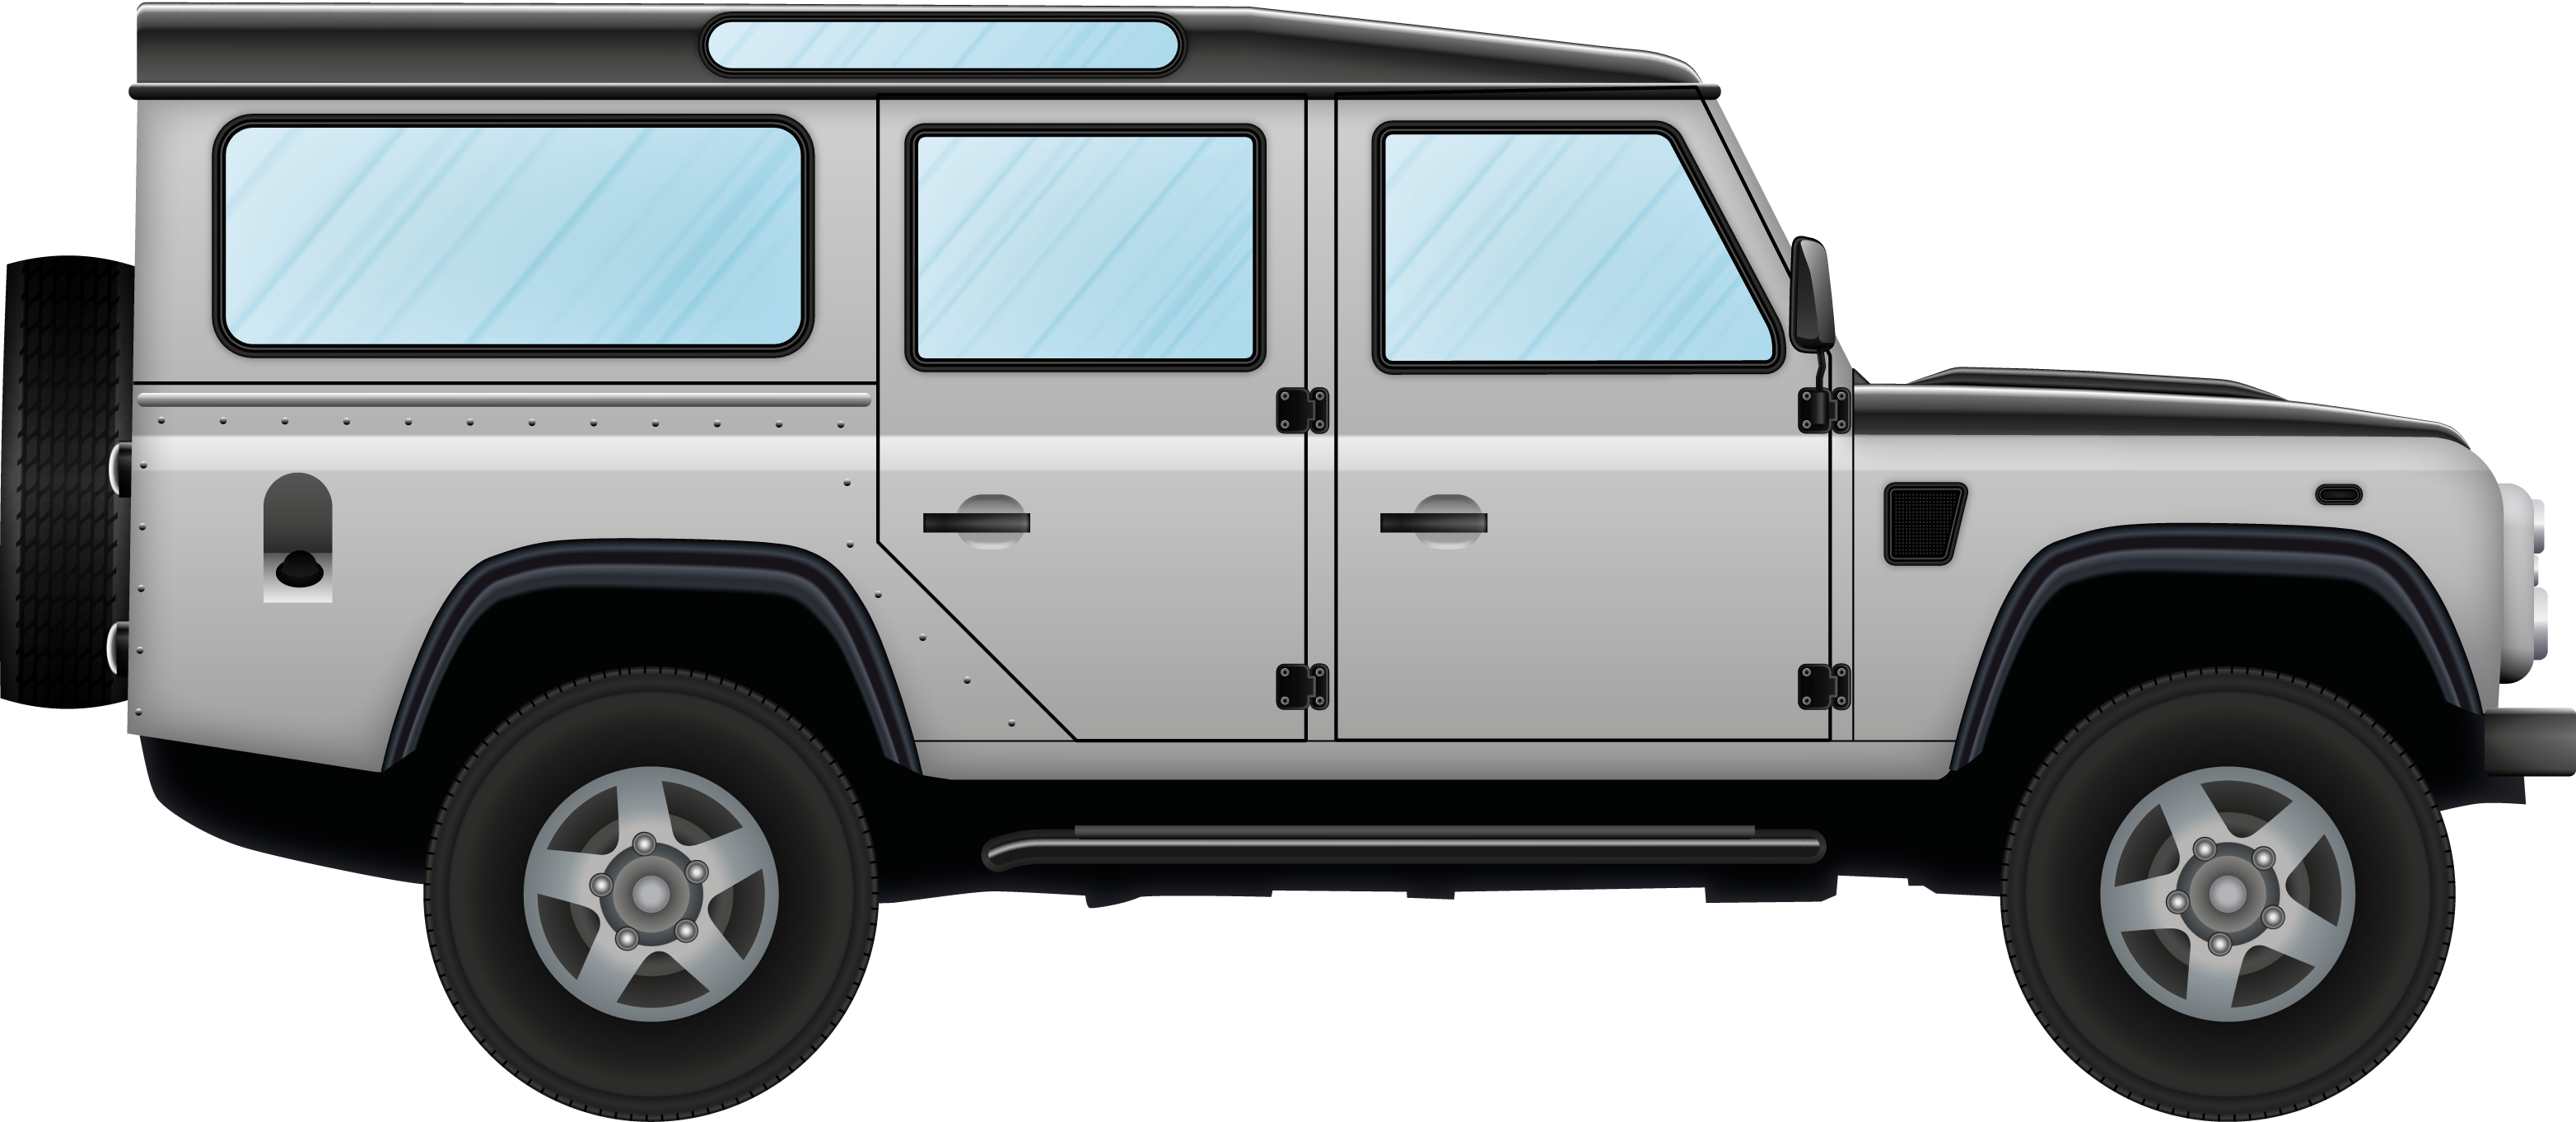 banner freeuse stock 4 wheel drive clipart. Land rover png image.